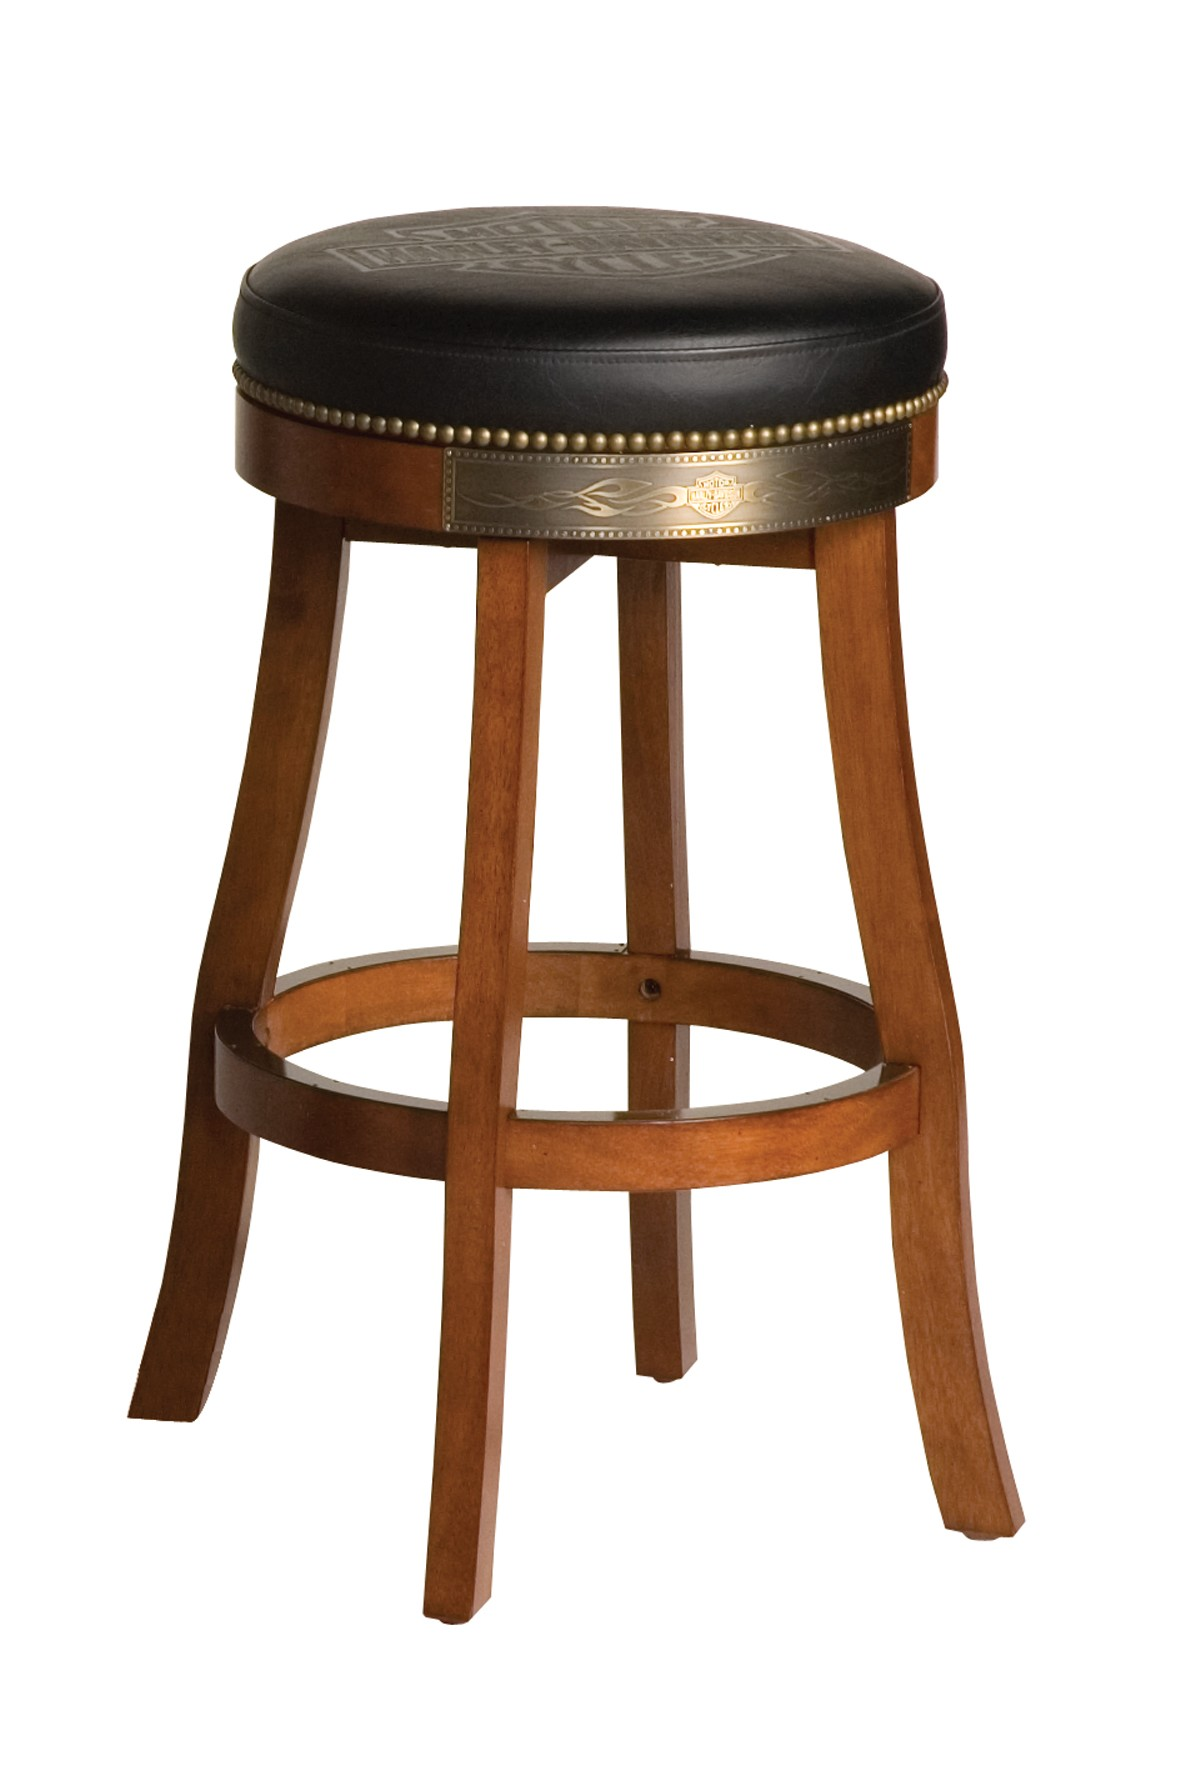 Harley-Davidson B&S Flames Bar Stool Heritage Brown Finish HDL-13120-H